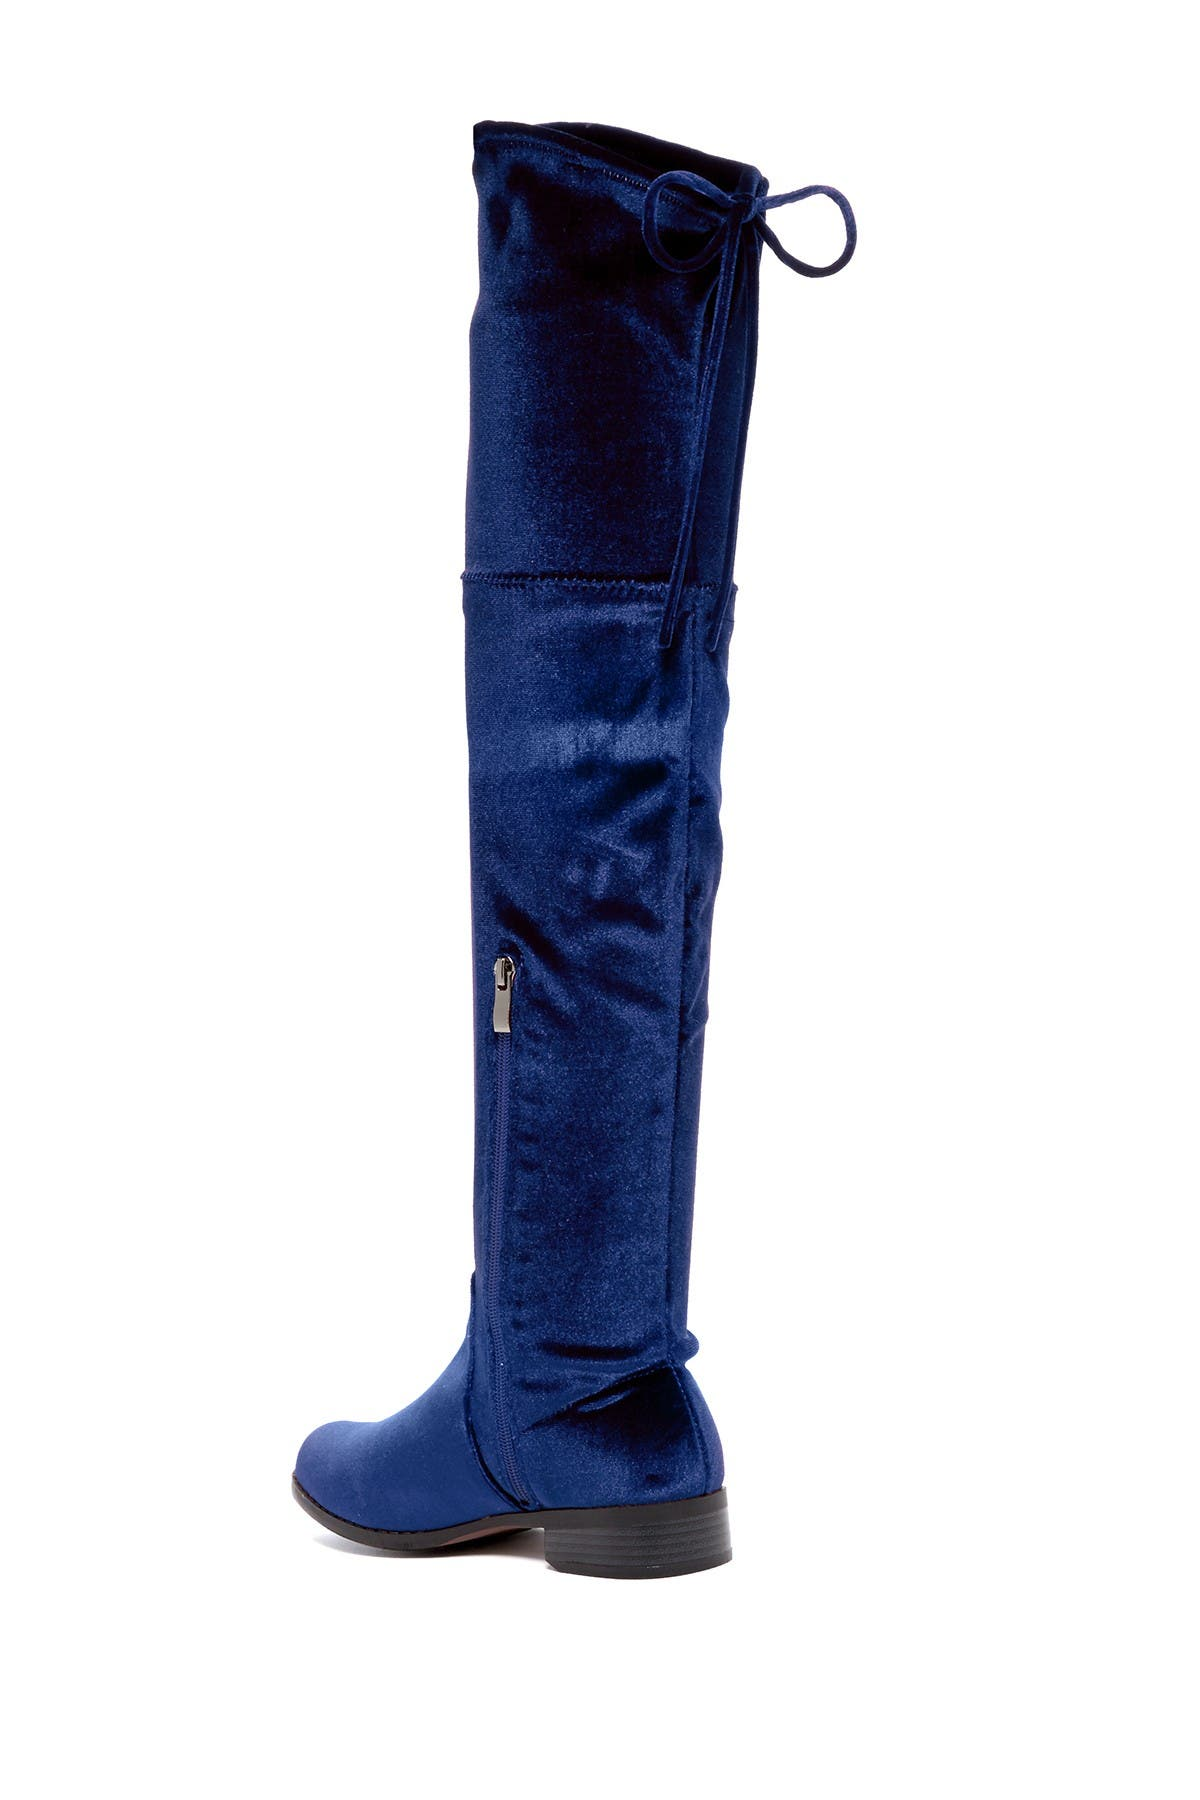 Image of Catherine Catherine Malandrino Morva Faux Fur Lined Tall Boot